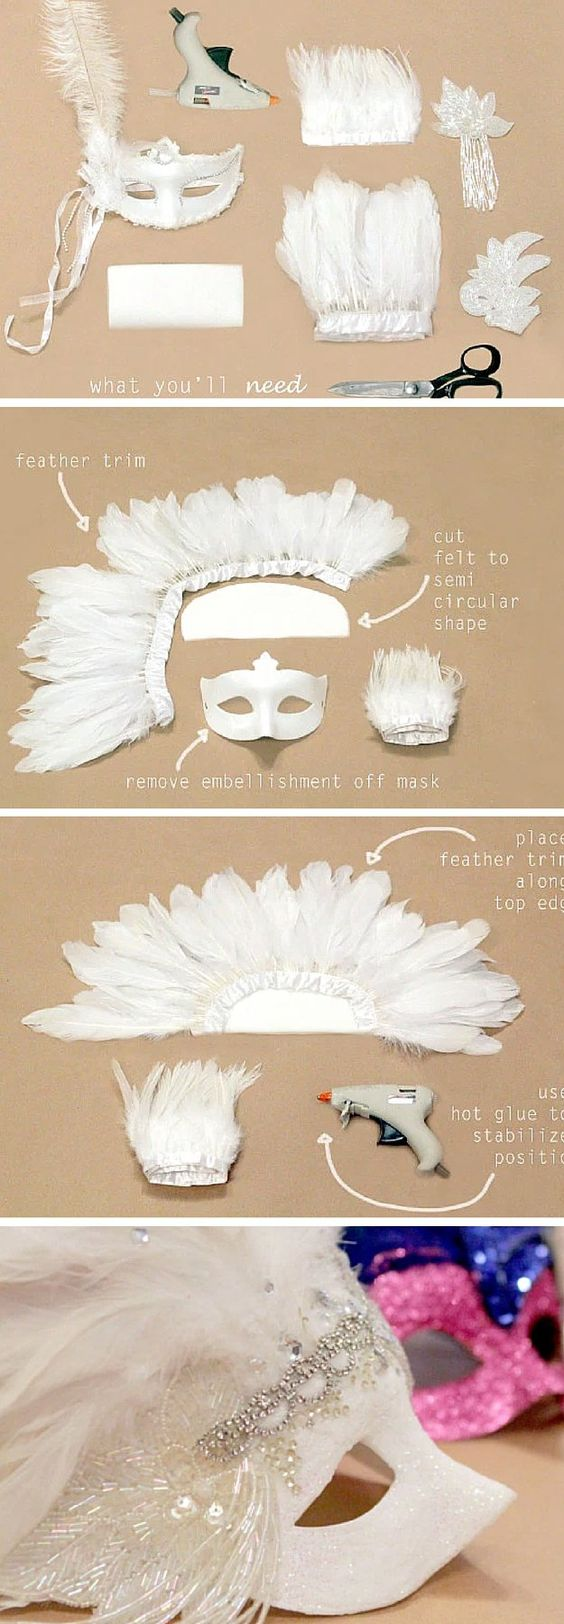 Carnival Mardi Gras Mask | Learn How To Make A Festive Mask With These 7 Easy DIY Mardi Gras Masks Tutorials by DIY Ready at http://diyready.com/7-diy-mardi-gras-masks-diy-tutorials/